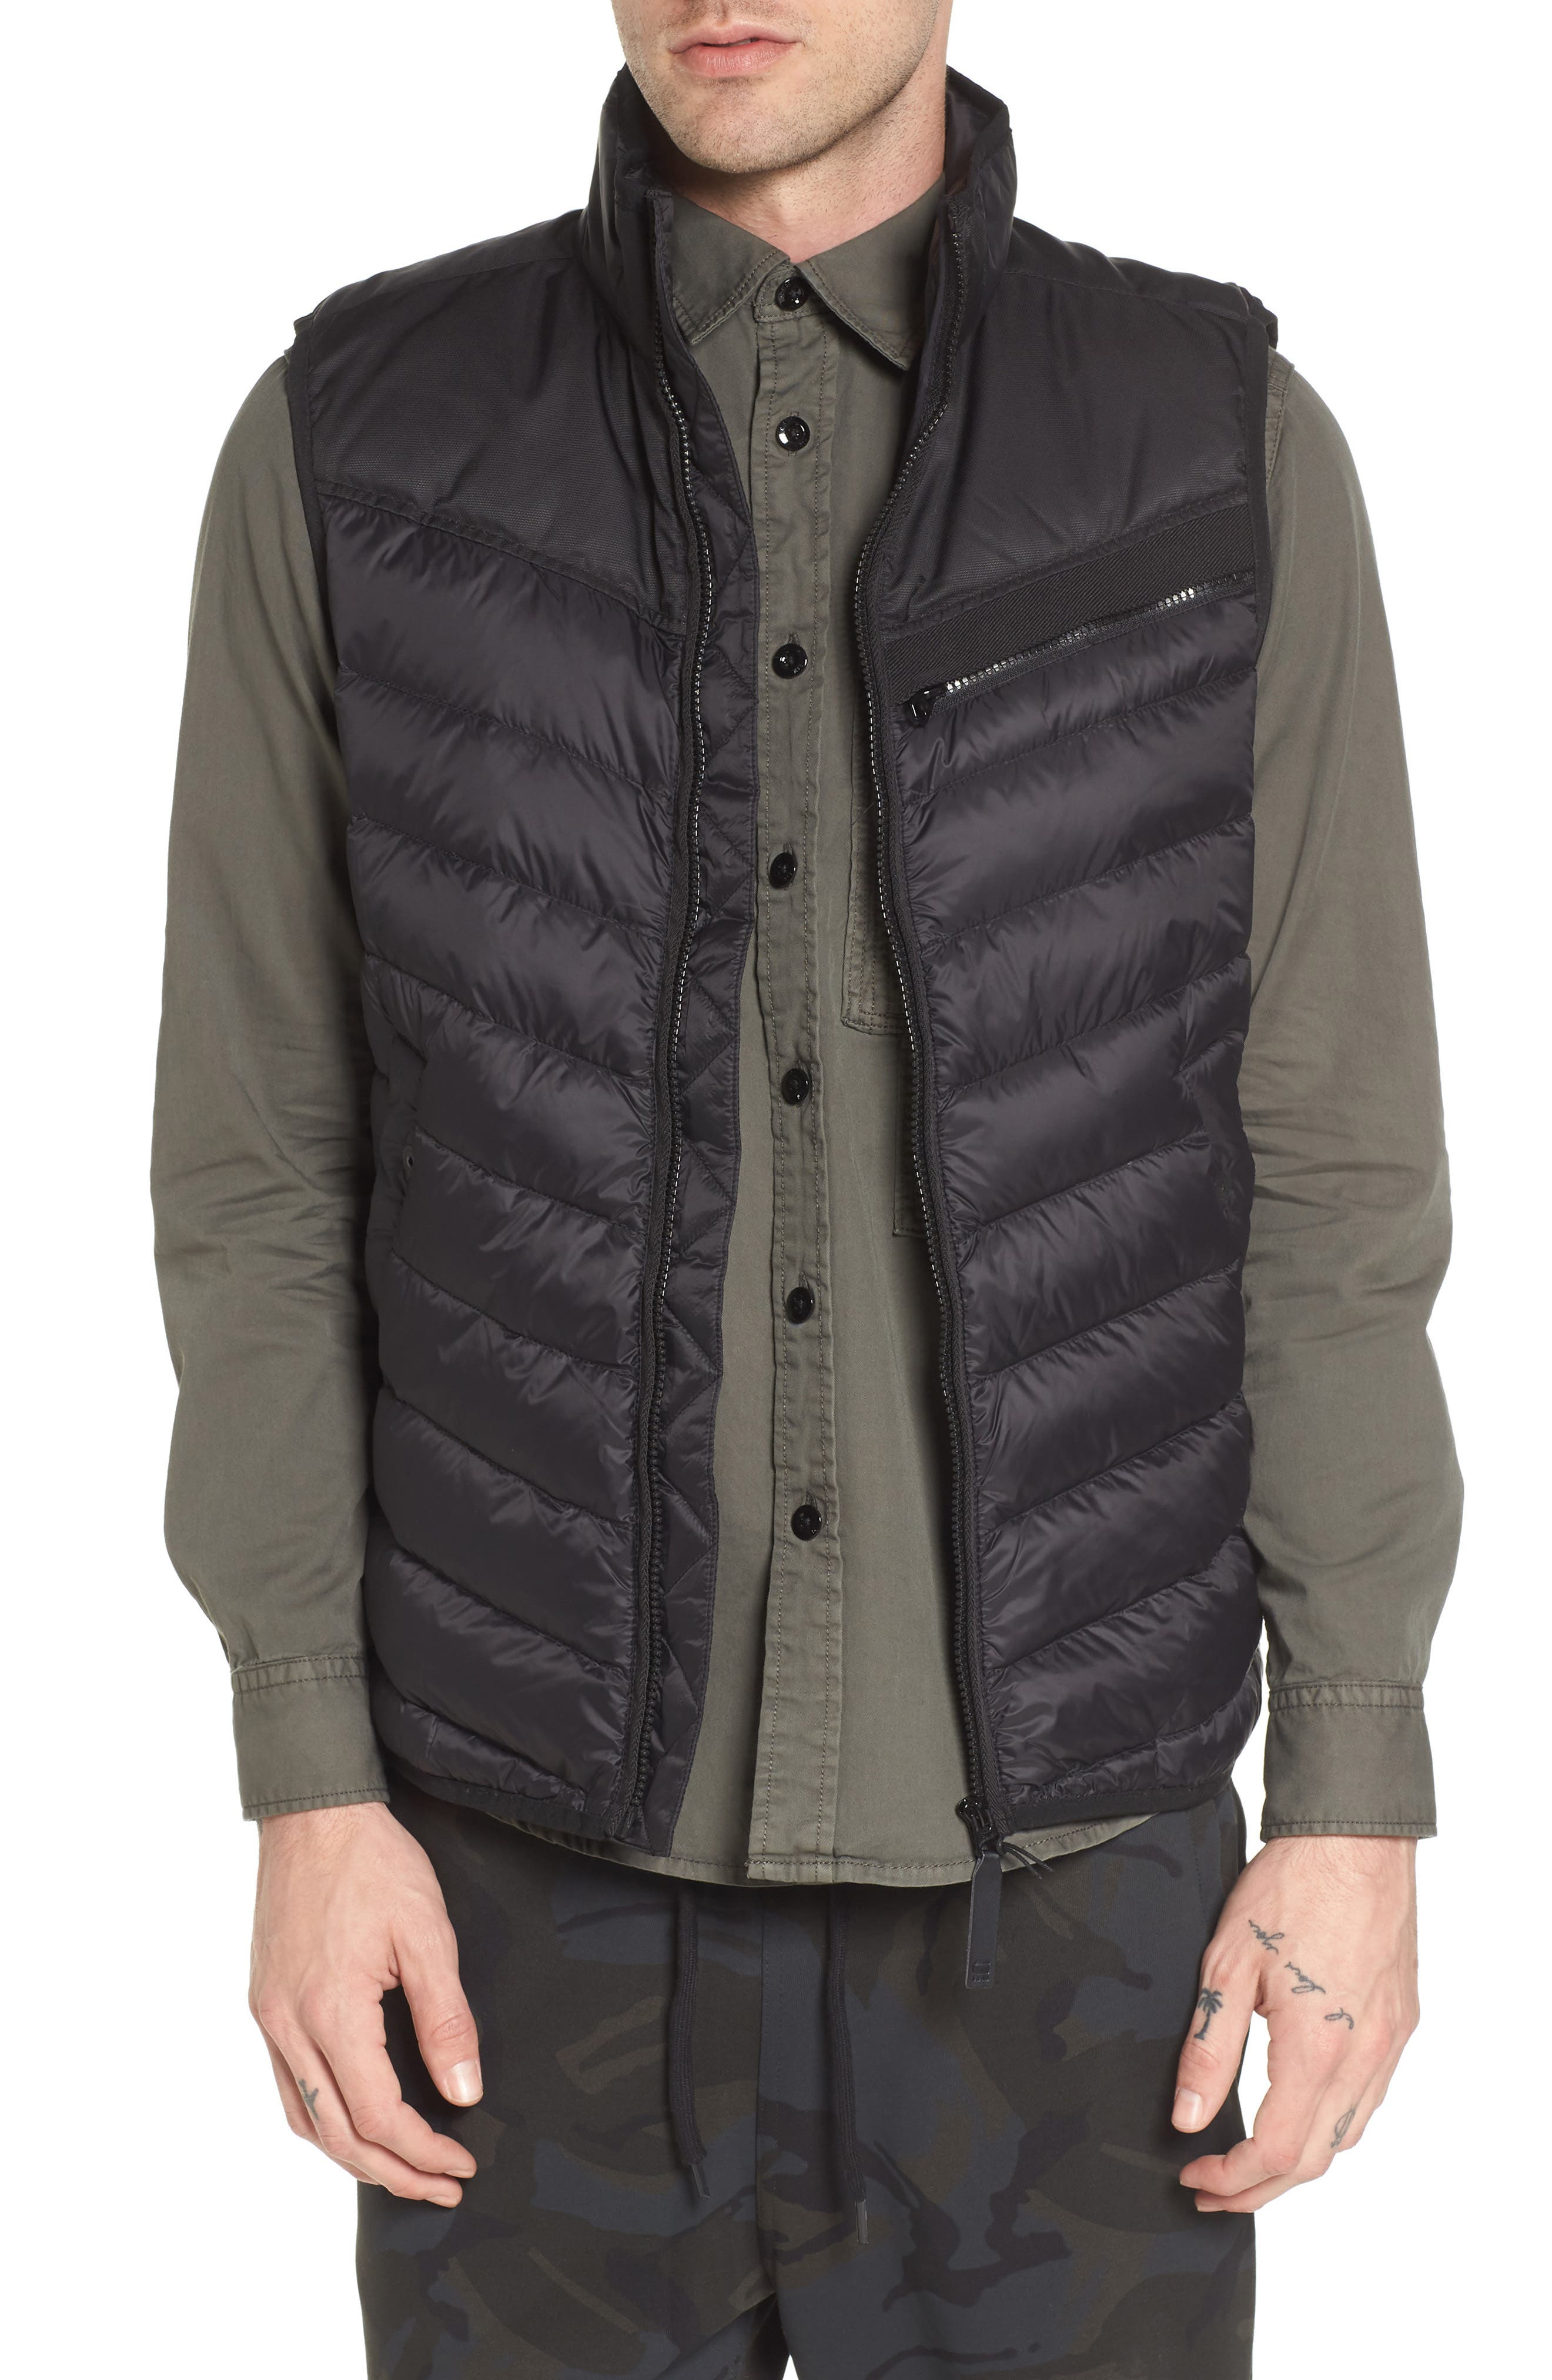 G-Star Raw Attacc Down Vest